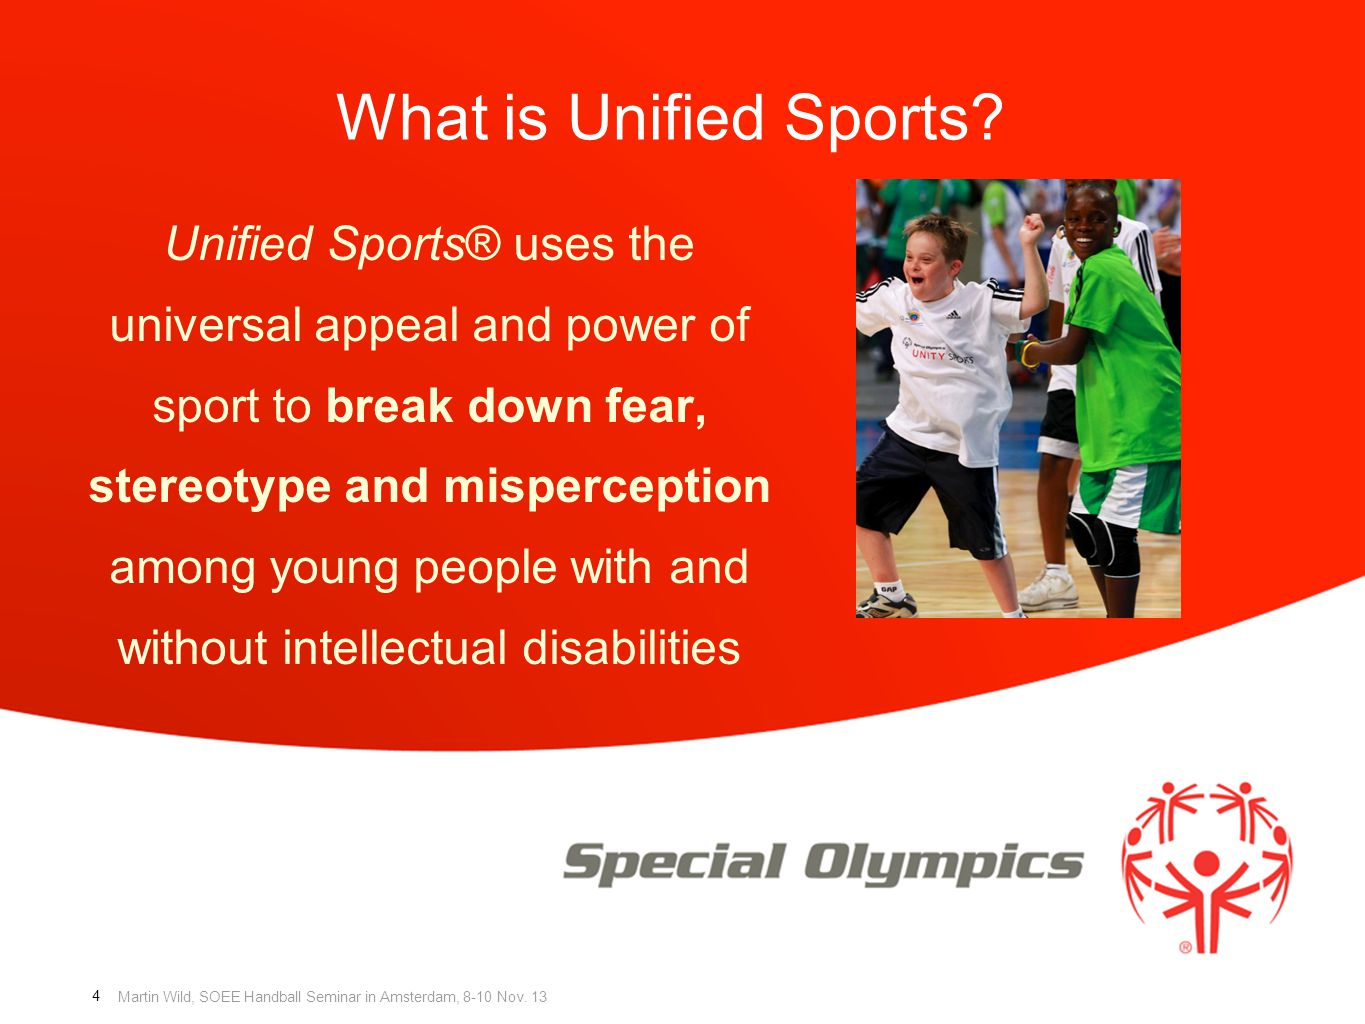 Martin Wild, SOEE Handball Seminar in Amsterdam, 8-10 Nov. 13 What is Unified Sports? Unified Sports® uses the universal appeal and power of sport to